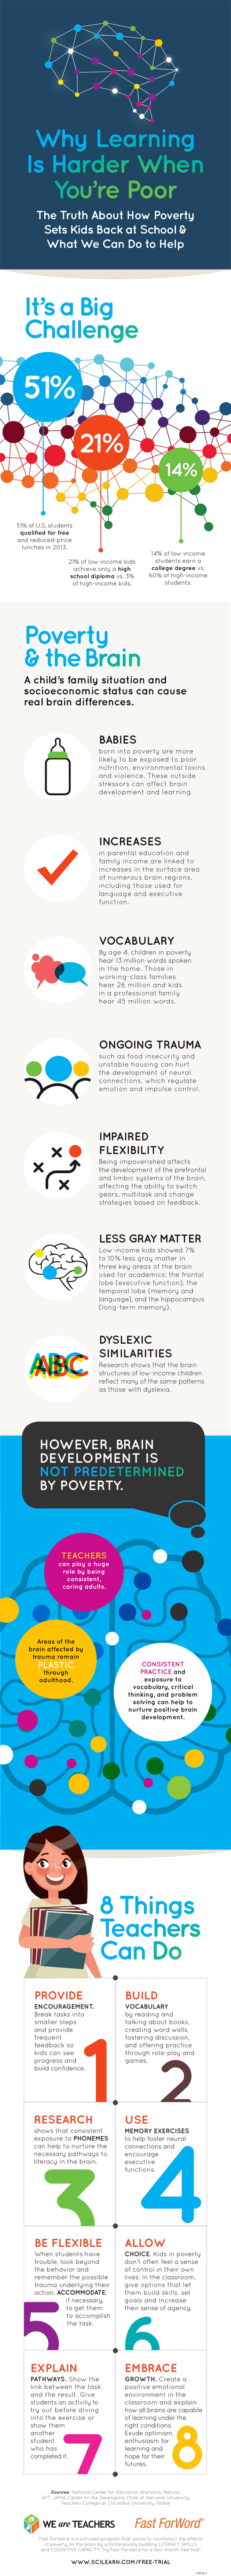 Why Learning Is Harder When You're Poor Infographic